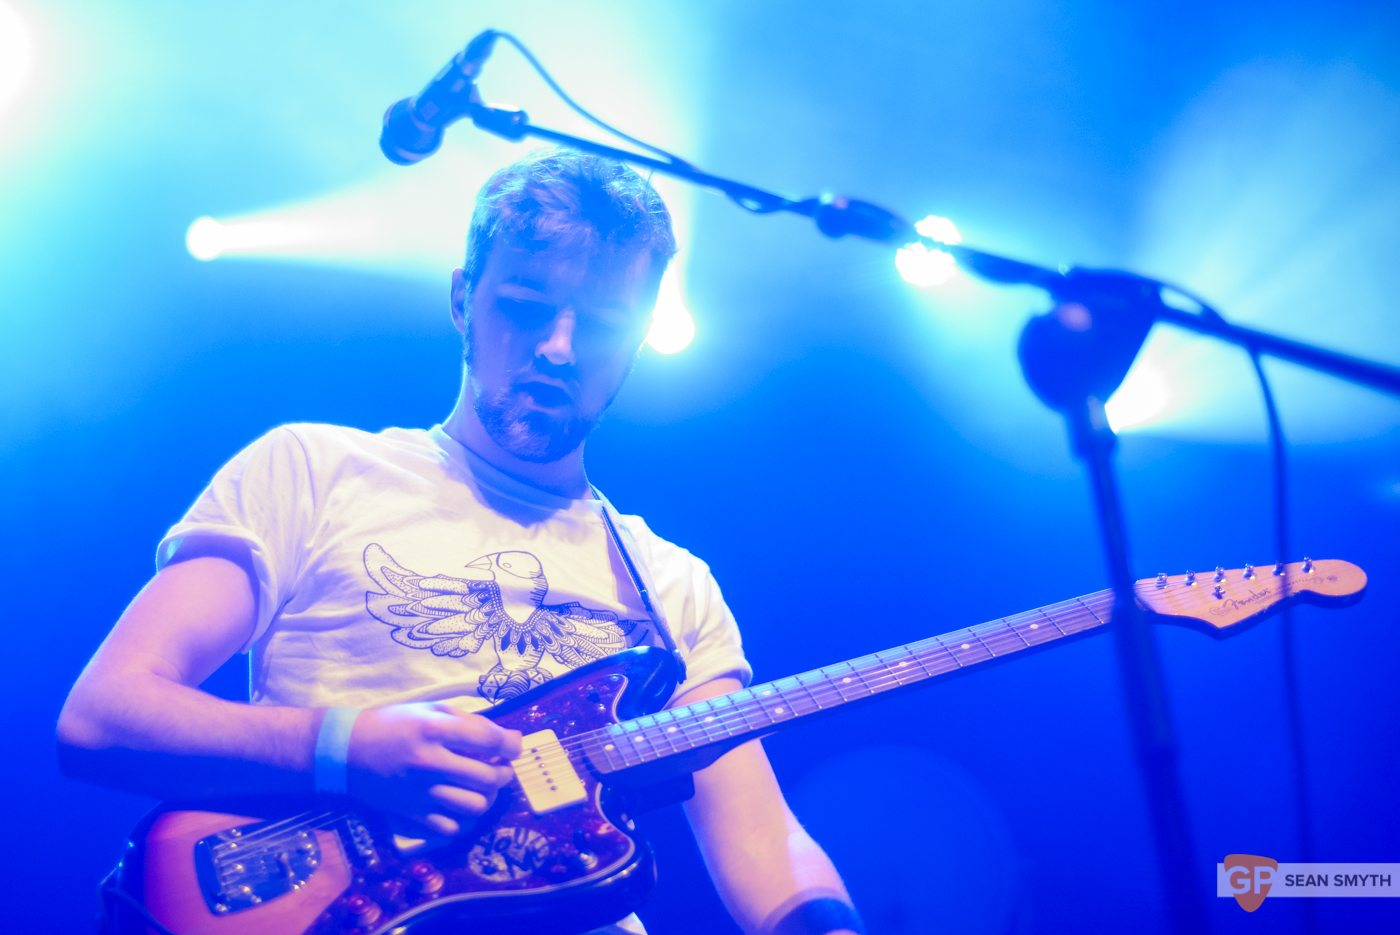 Search Party Animal at Vicar Street by Sean Smyth (18-12-16) (1 of 5)